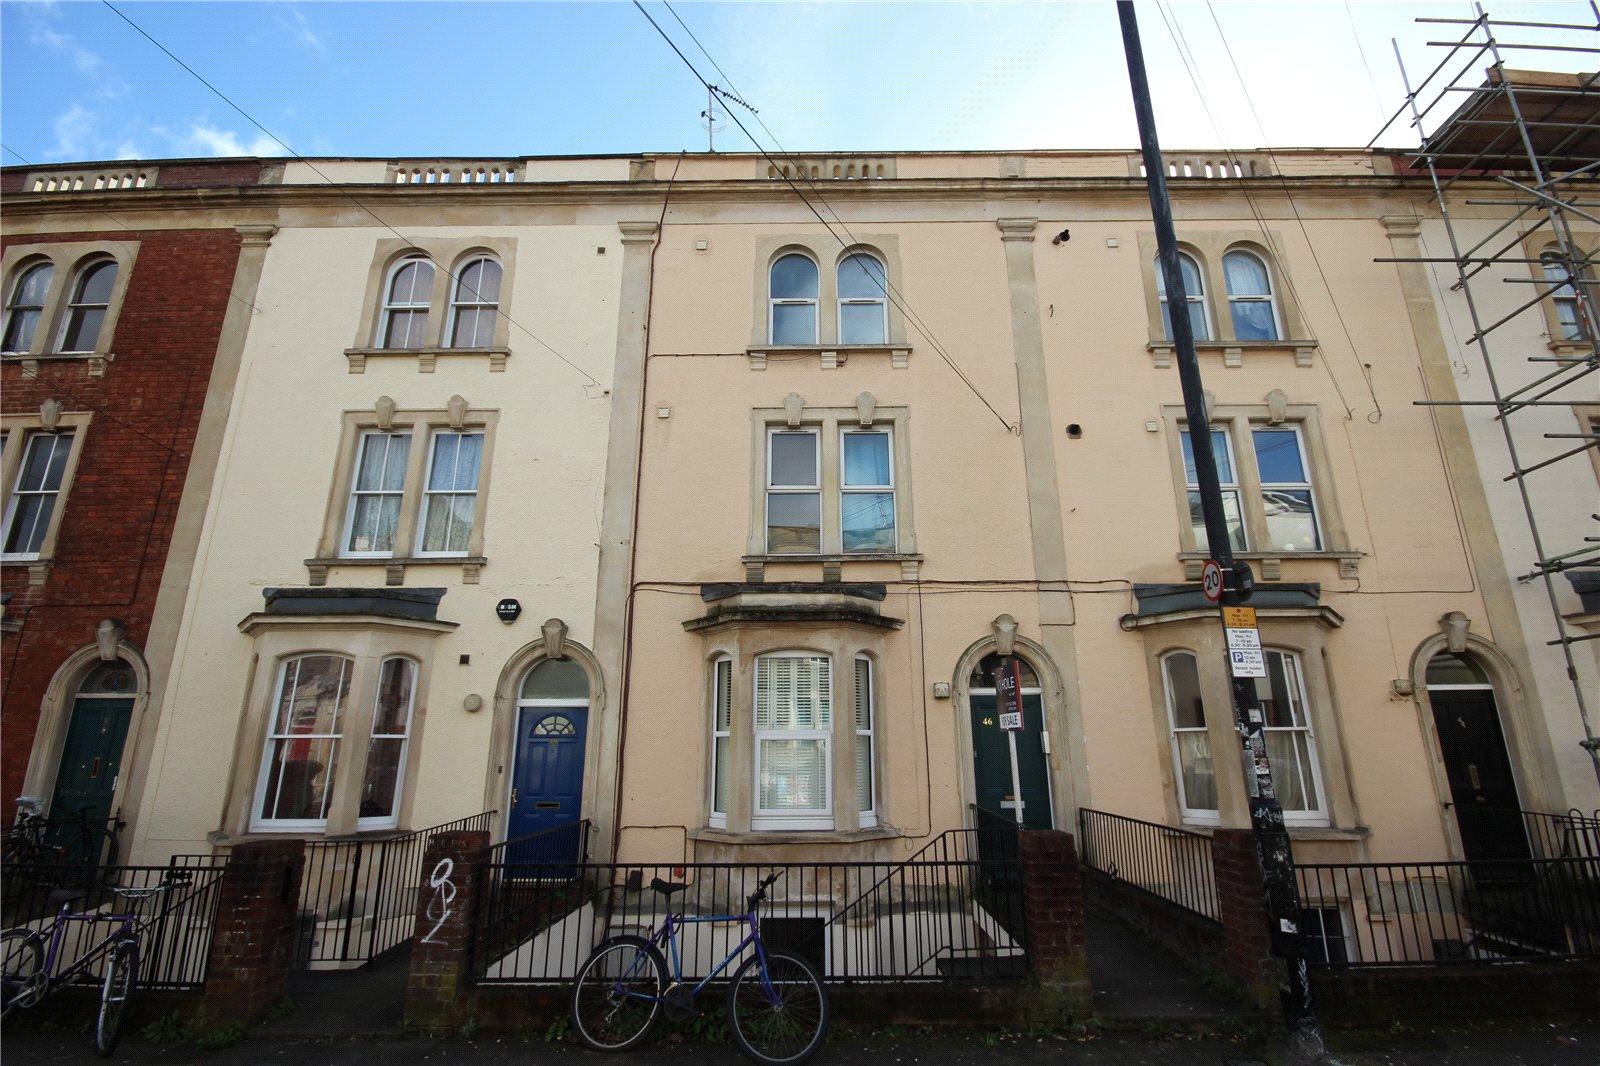 Cj Hole Bishopston 2 Bedroom Flat For Sale In City Road St